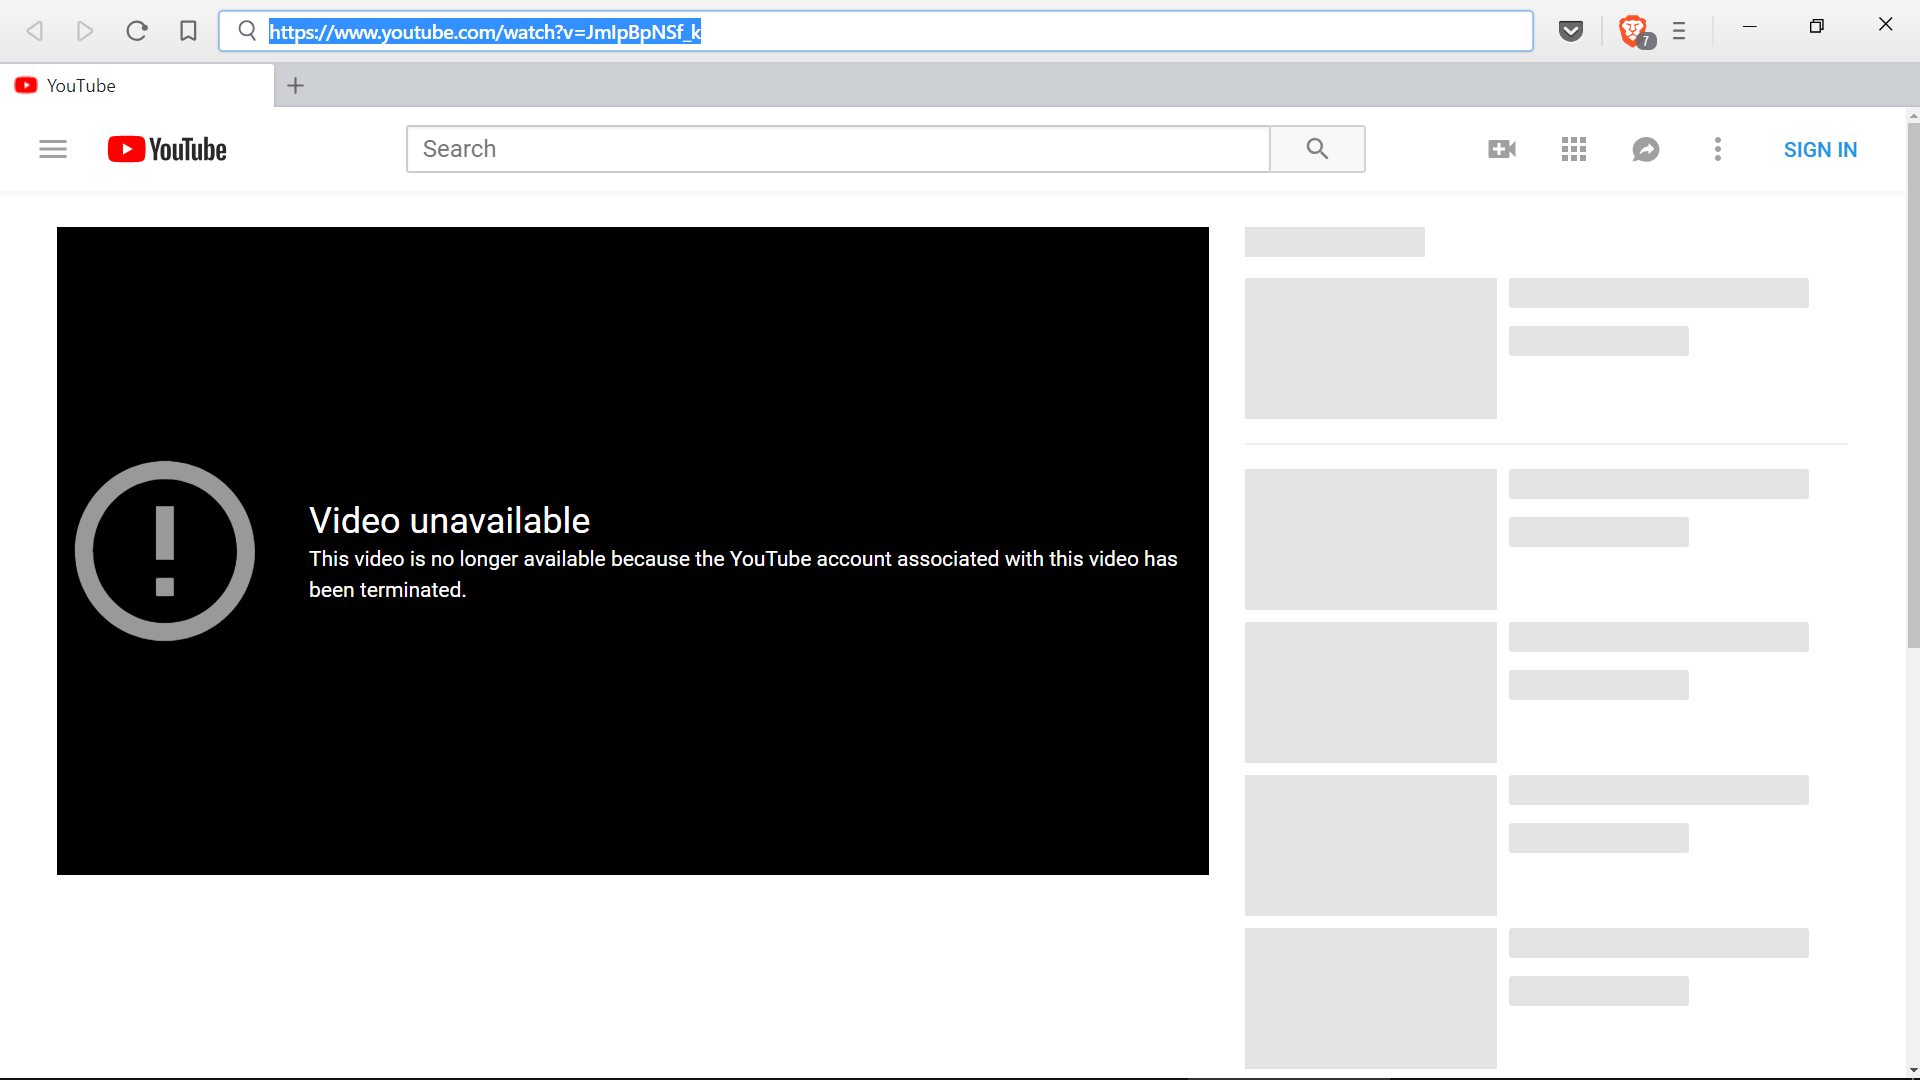 Youtube shows no video and says that the account has been deleted